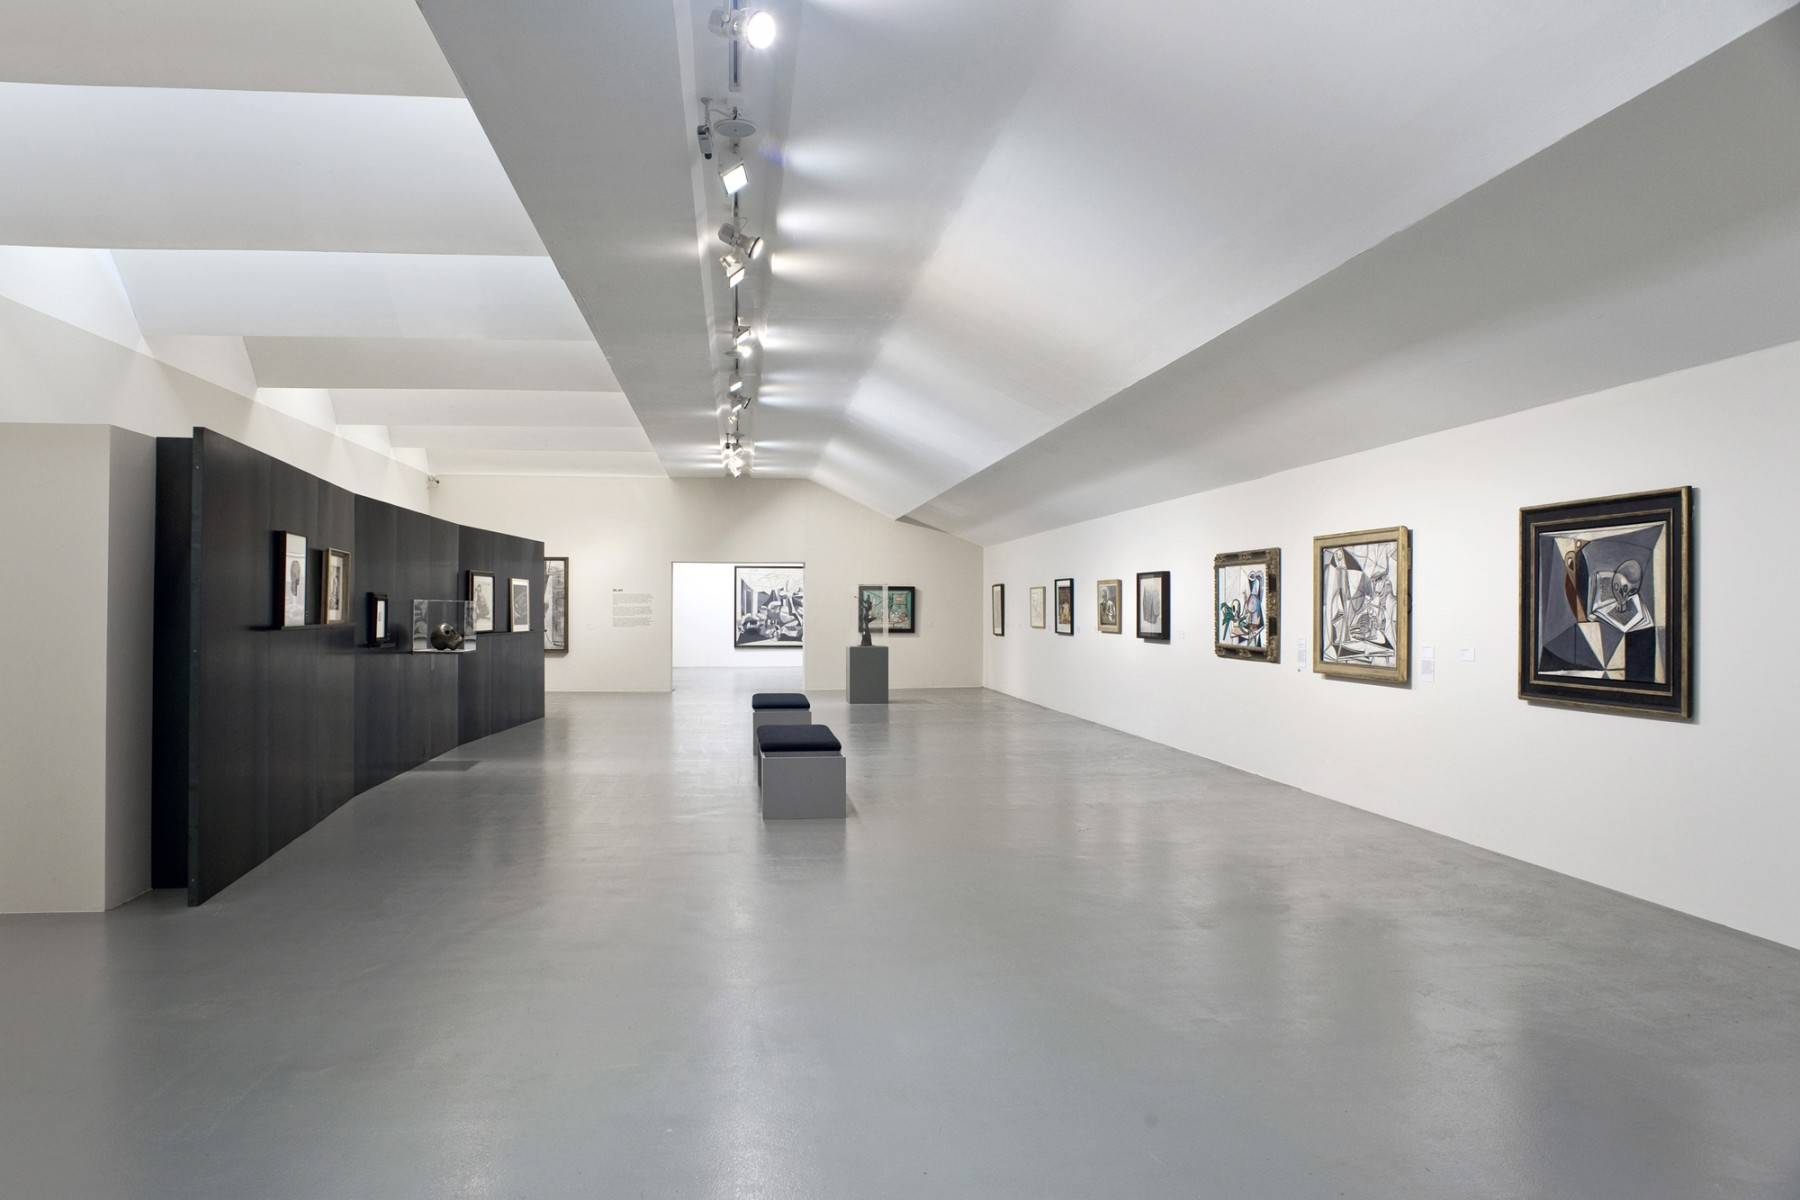 Picasso-Peace-and-Freedom-Tate-Liverpool-design-steel-exhibition-art-Jamie-Fobert-Architects-4